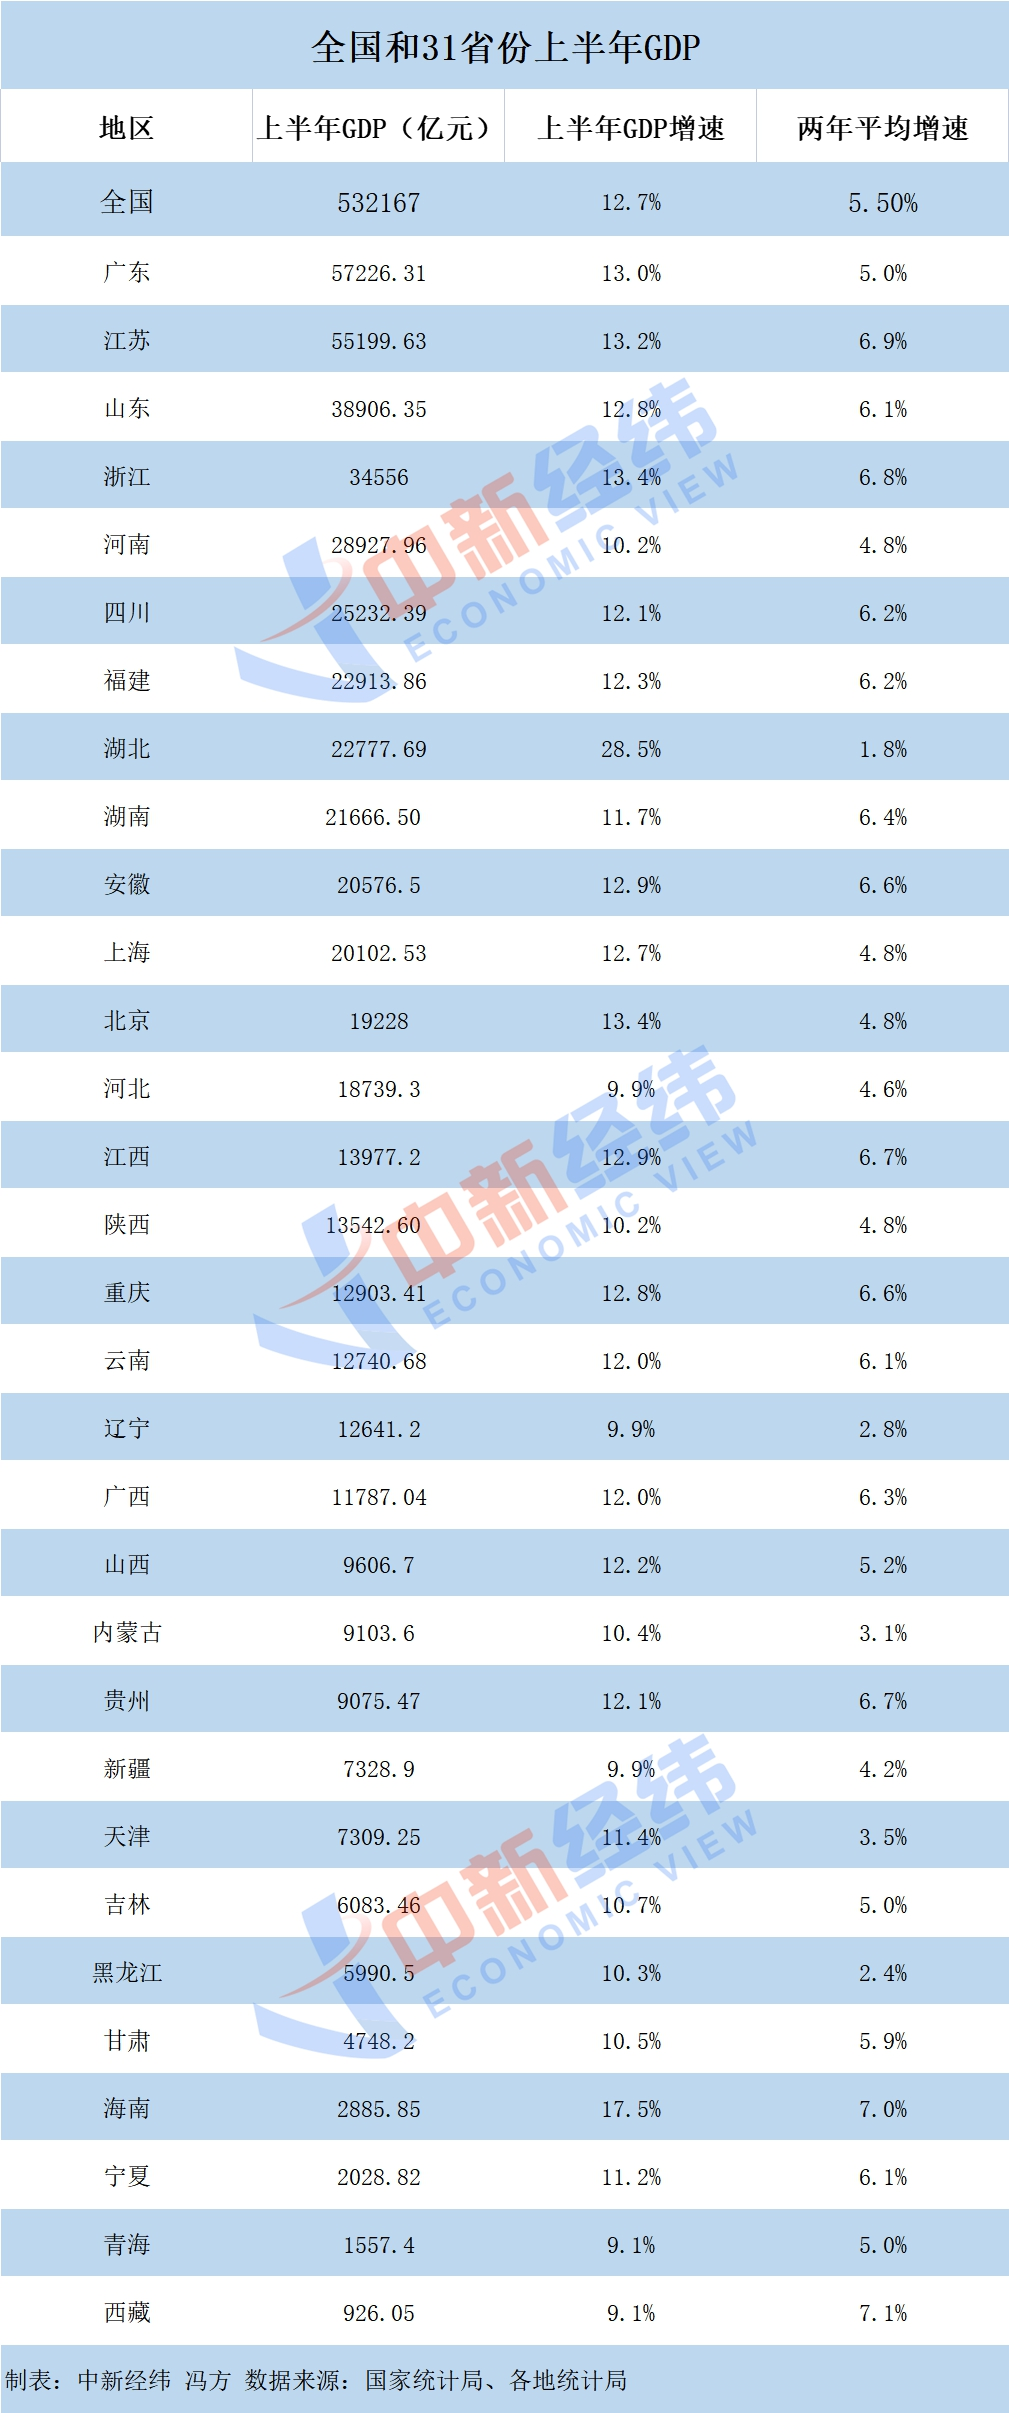 Economic semi-annual report of 31 provinces: Guangdong and Jiangsu enter the 5 trillion club, Hubei tops the growth rate